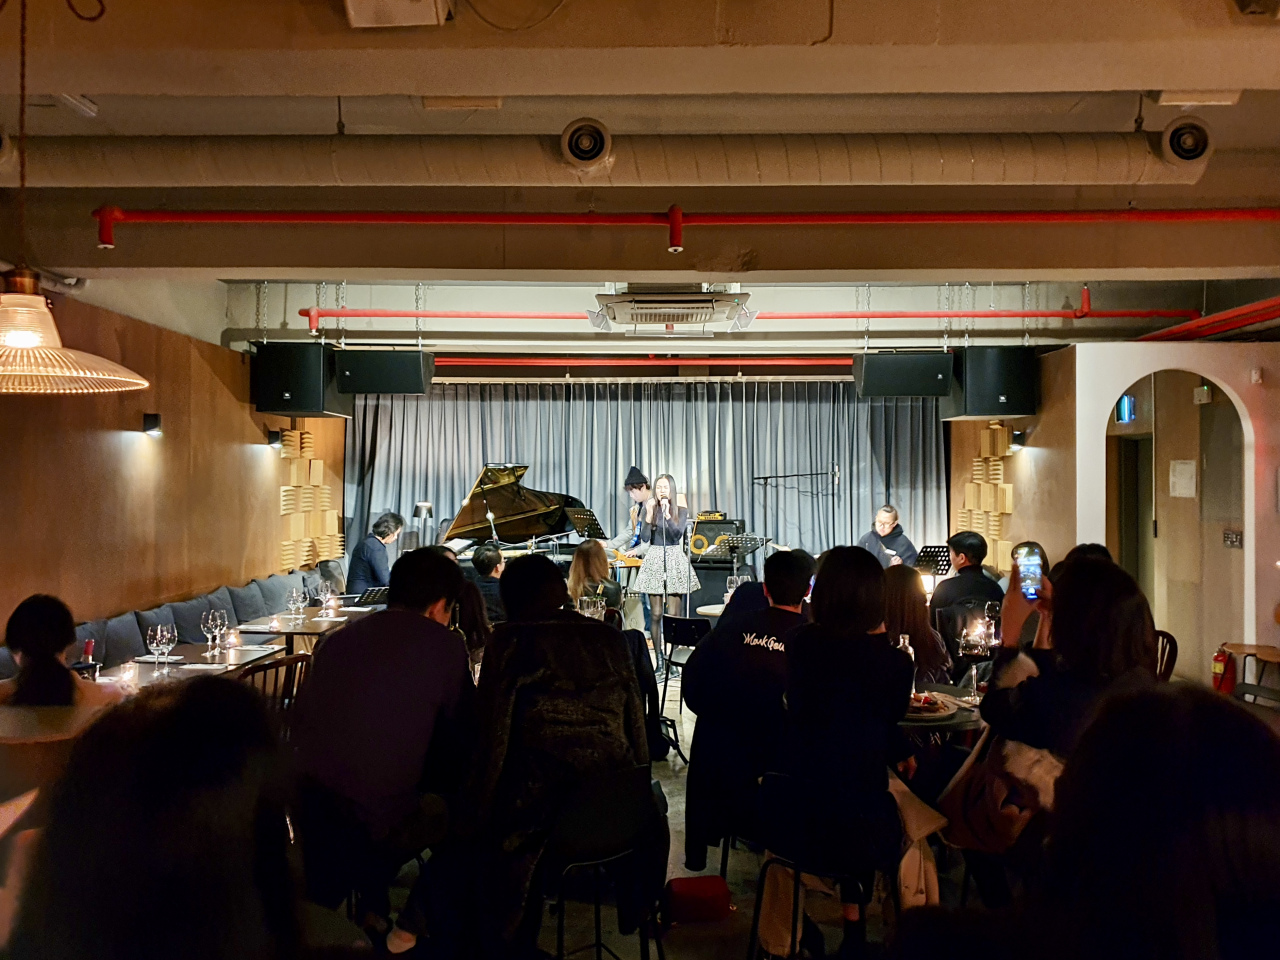 Singer-songwriter Choyoung performs at the Positive Zero Lounge in Seongsu-dong, eastern Seoul, Friday. (Im Eun-byel/The Korea Herald)